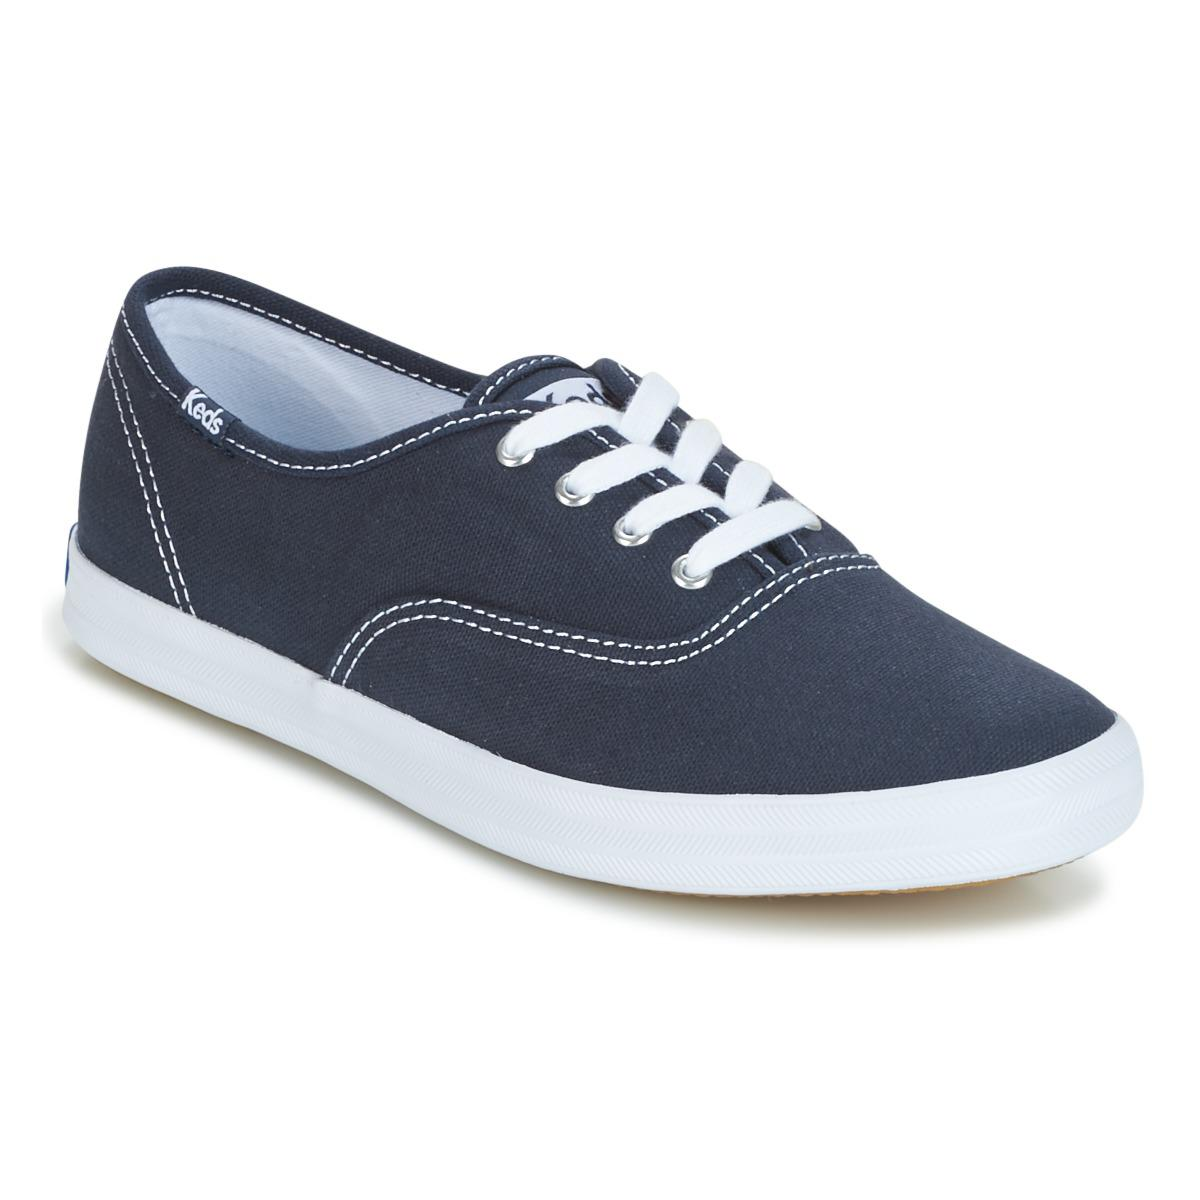 5addd68a8cf11 Keds Champion Core Canvas Shoes (trainers) in Blue - Lyst